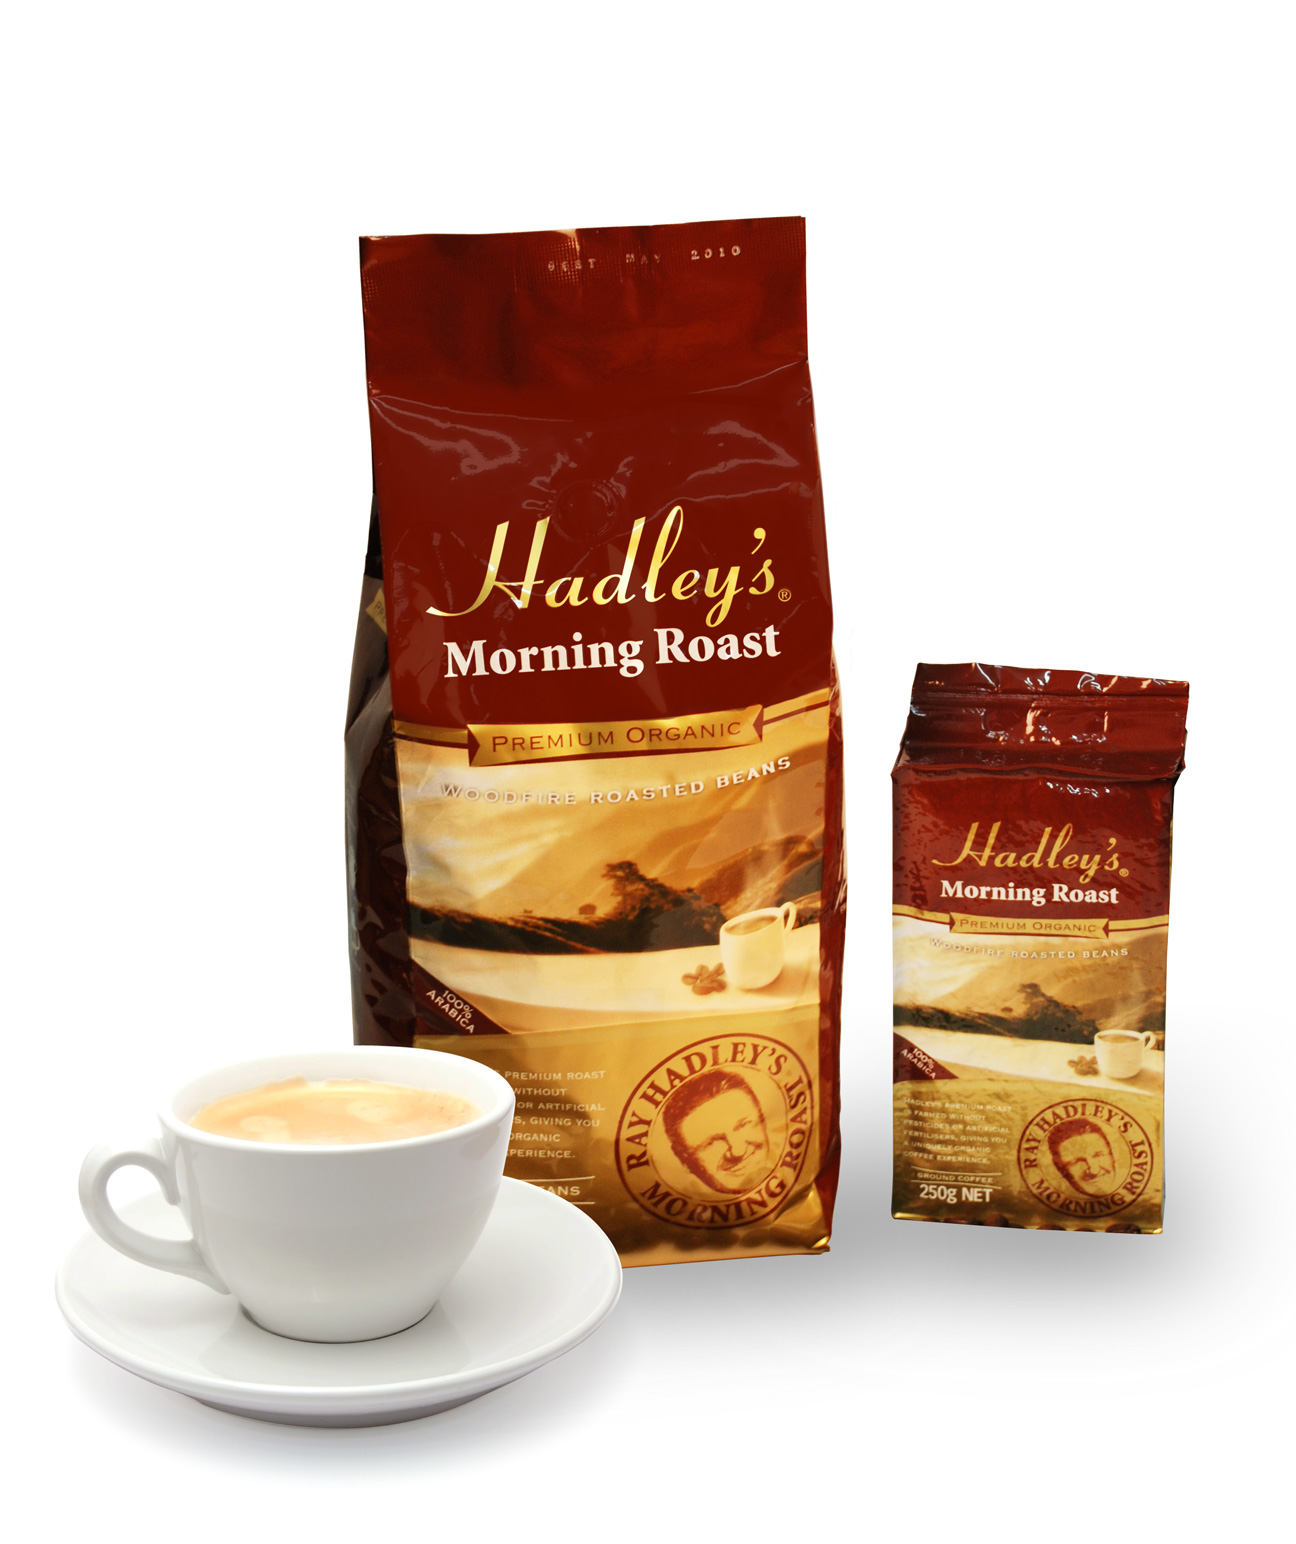 Premium Organic Coffee Packaging Designs.: toastdesign.com.au/design/hadleys-morning-roast